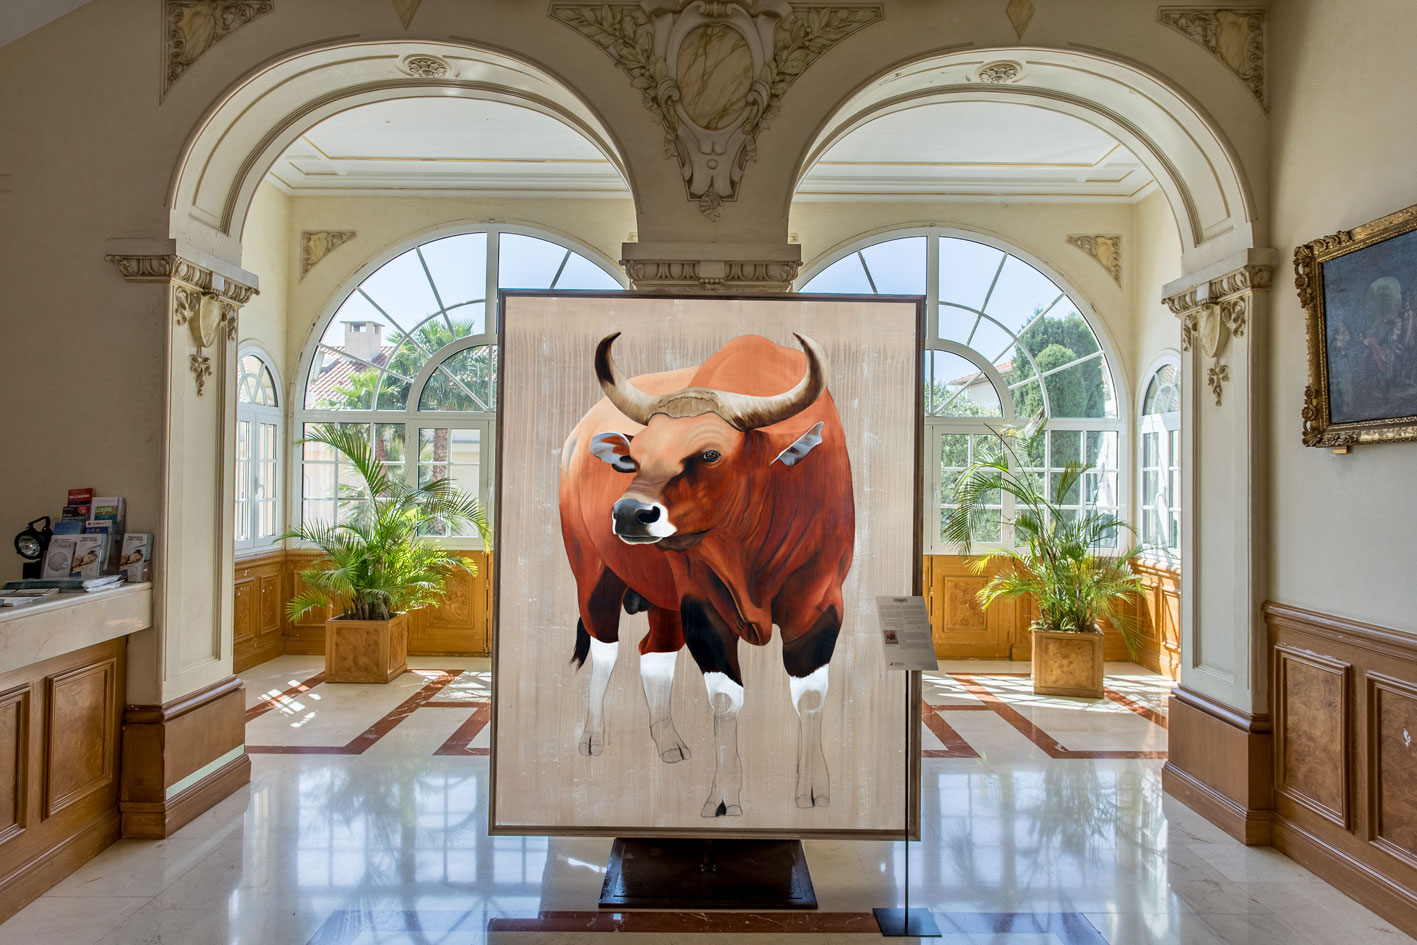 MAIRIE DE MONACO banteng-bos-javanicus-asian-red-bull-threatened-endangered-extinction Animal painting by Thierry Bisch pets wildlife artist painter canvas art decoration